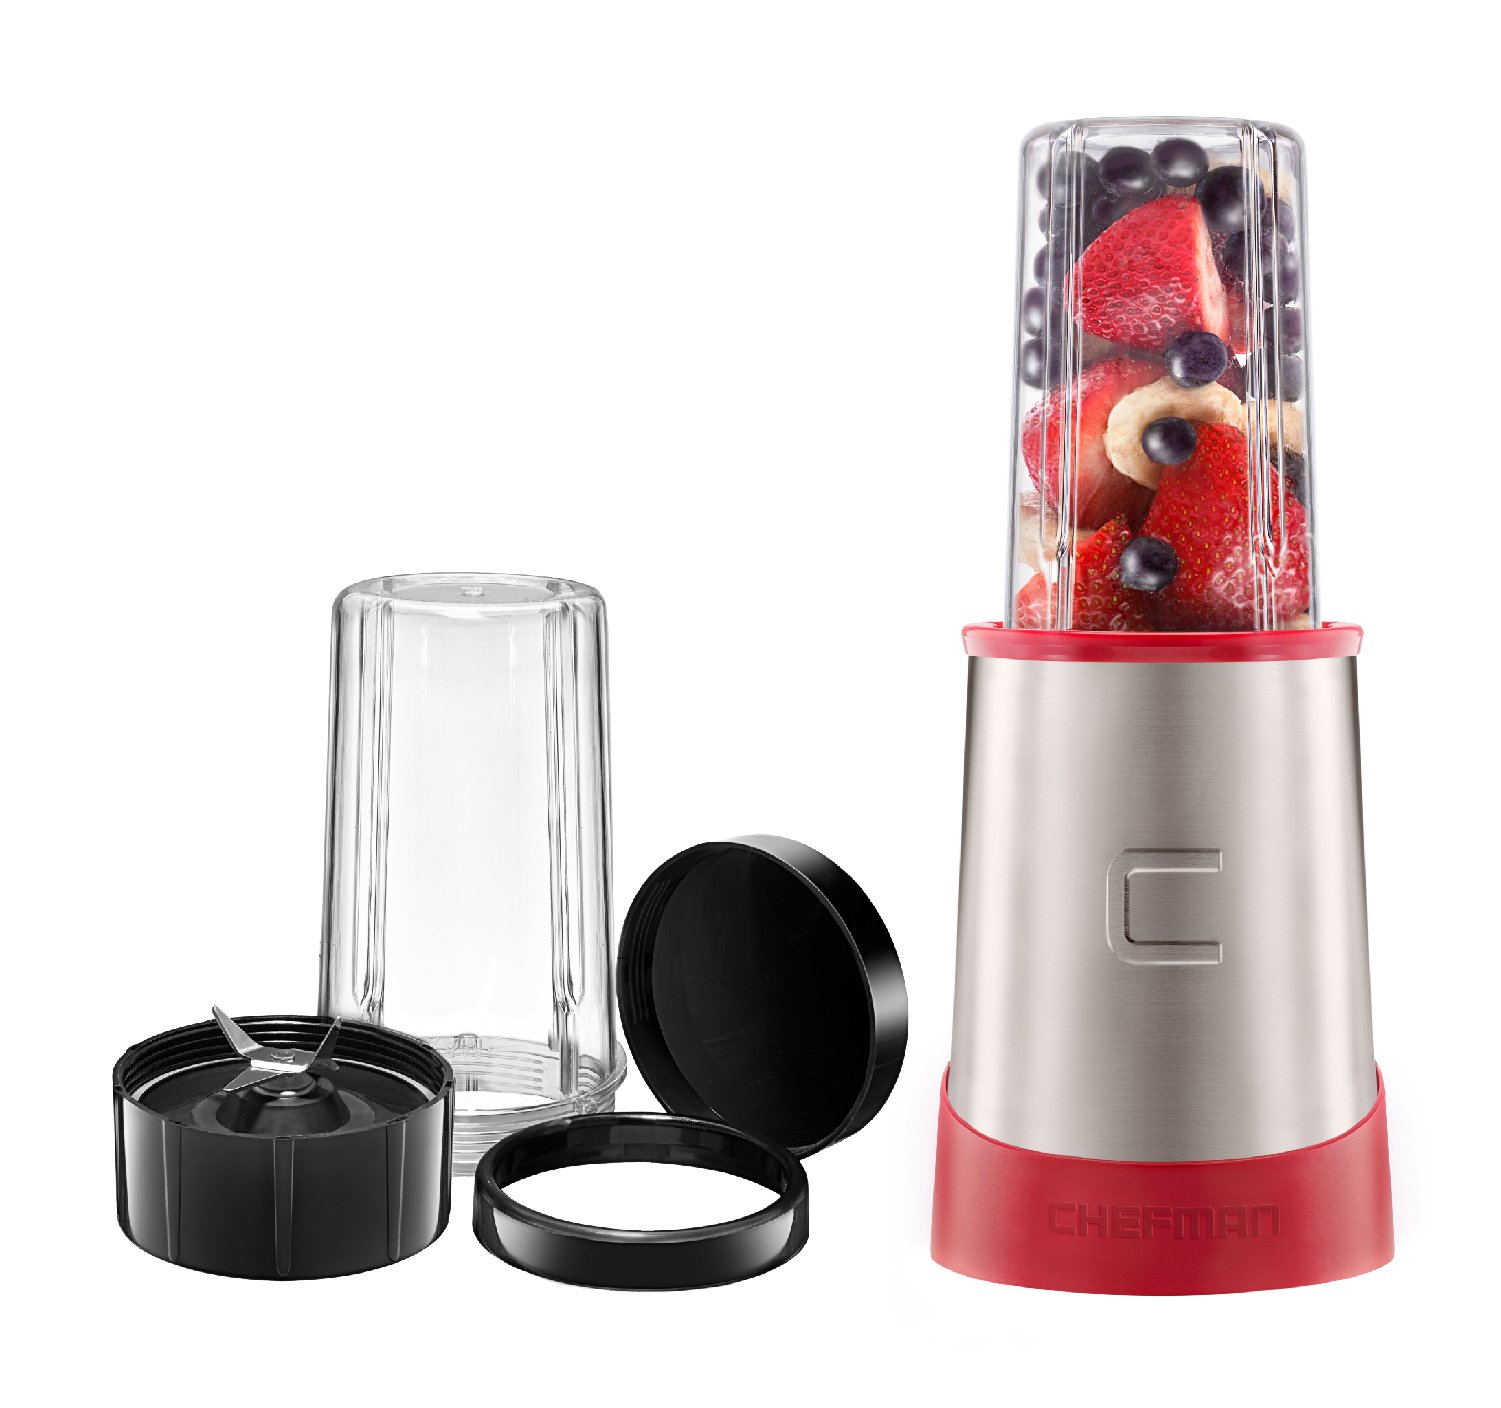 Chefman Ultimate Personal Smoothie Blender, Single Serve, Stainless Steel Blending Blade, 2 Travel Cups with Lids, Solid Storage Cover and Comfort Drinking Rim, 6 Piece - RJ28-6-SS-Red by Chefman (Image #1)